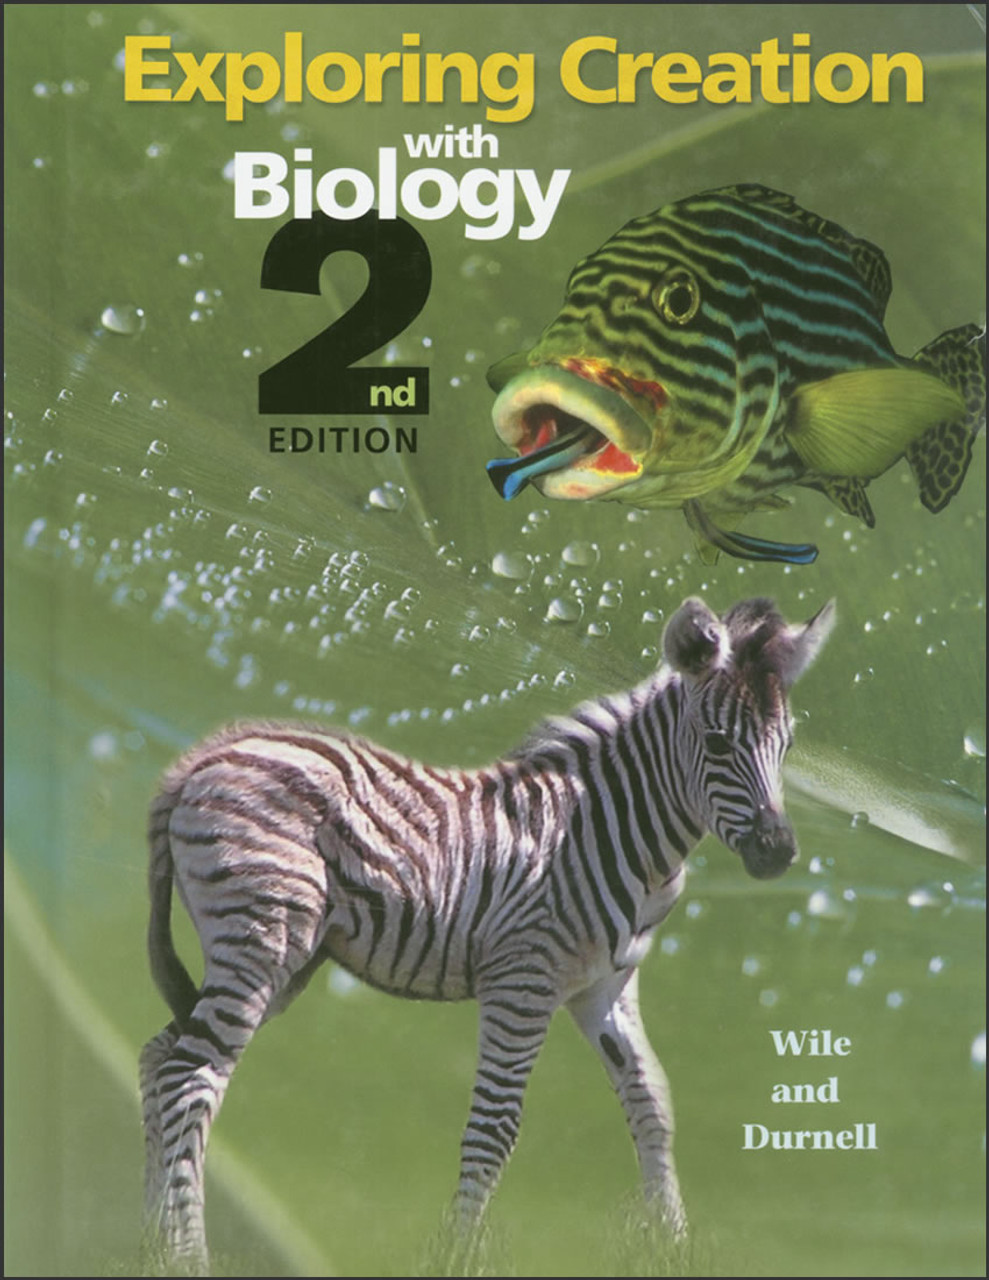 Exploring Creation with Biology, 2nd edition